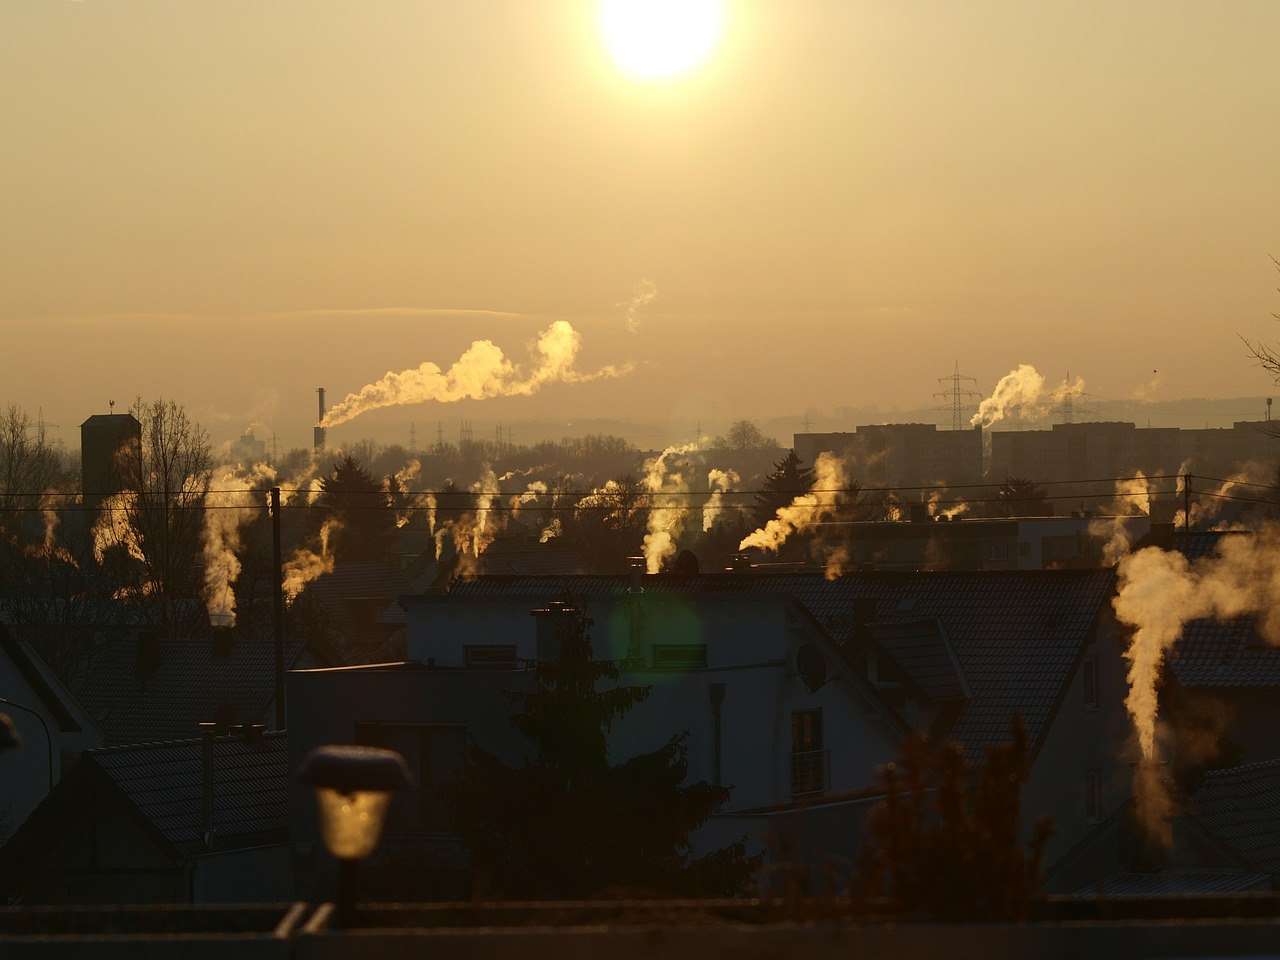 Outdoor Air Pollution: Causes, Sources, Effects & Prevention/Solutions